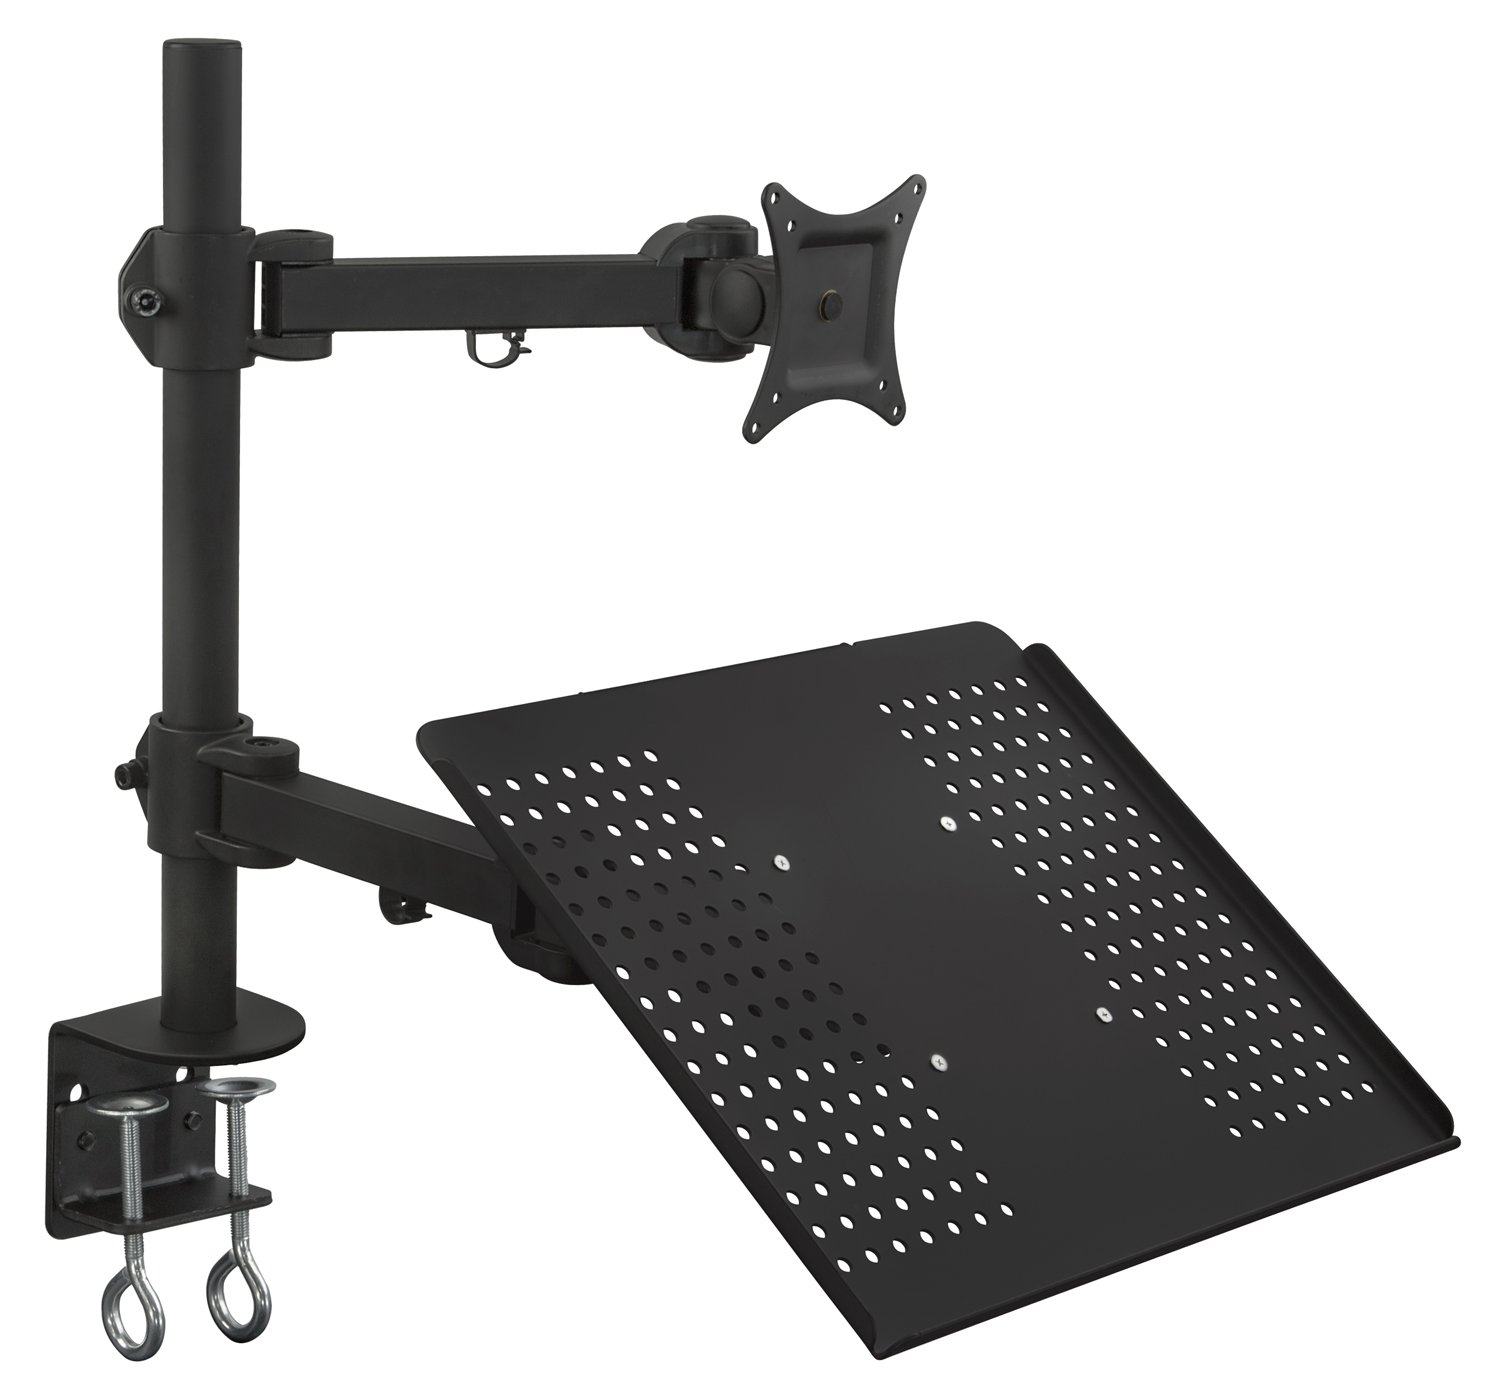 Mount-It! MI-3352LTMN Laptop Desk Stand and Monitor Mount, Full Motion Height Adjustable Holder, Fits up to 17 Inch Notebooks, VESA 75, 100 Compatible with 22, 23, 24, 27 inch Screens, Carries 44 Lb by Mount-It! (Image #1)